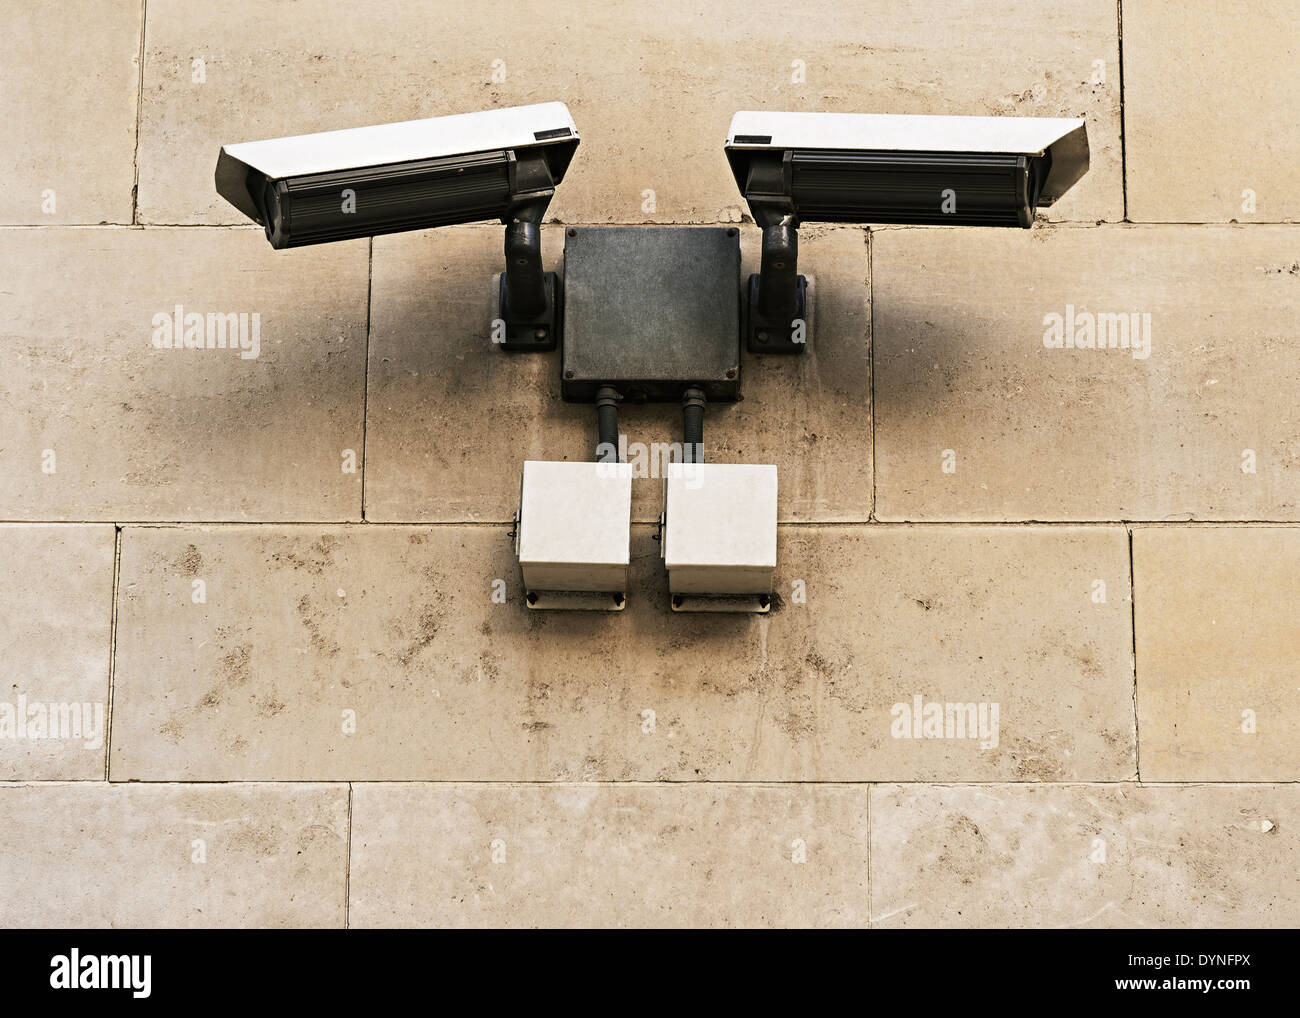 CCTV Security Cameras Mounted on a Wall, London, UK. - Stock Image